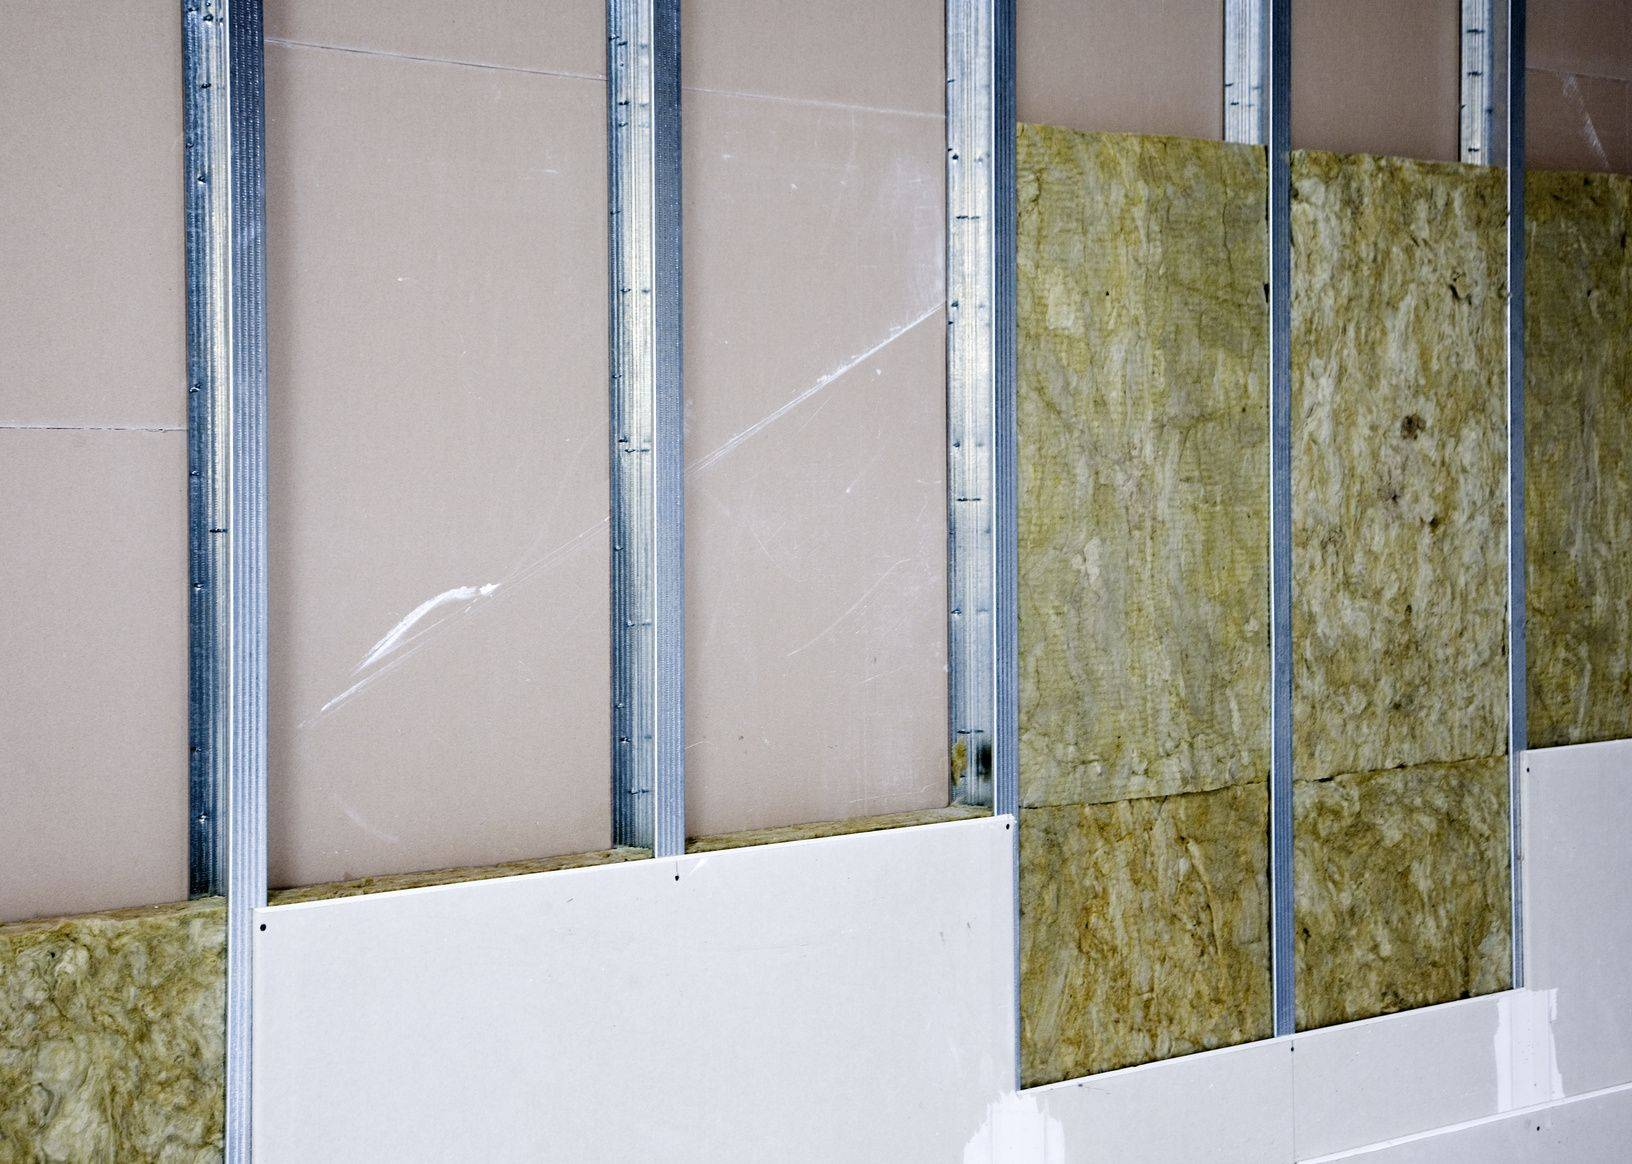 Fermacell Exterieur Simple Affordable Partition And Drywall Technical Covering